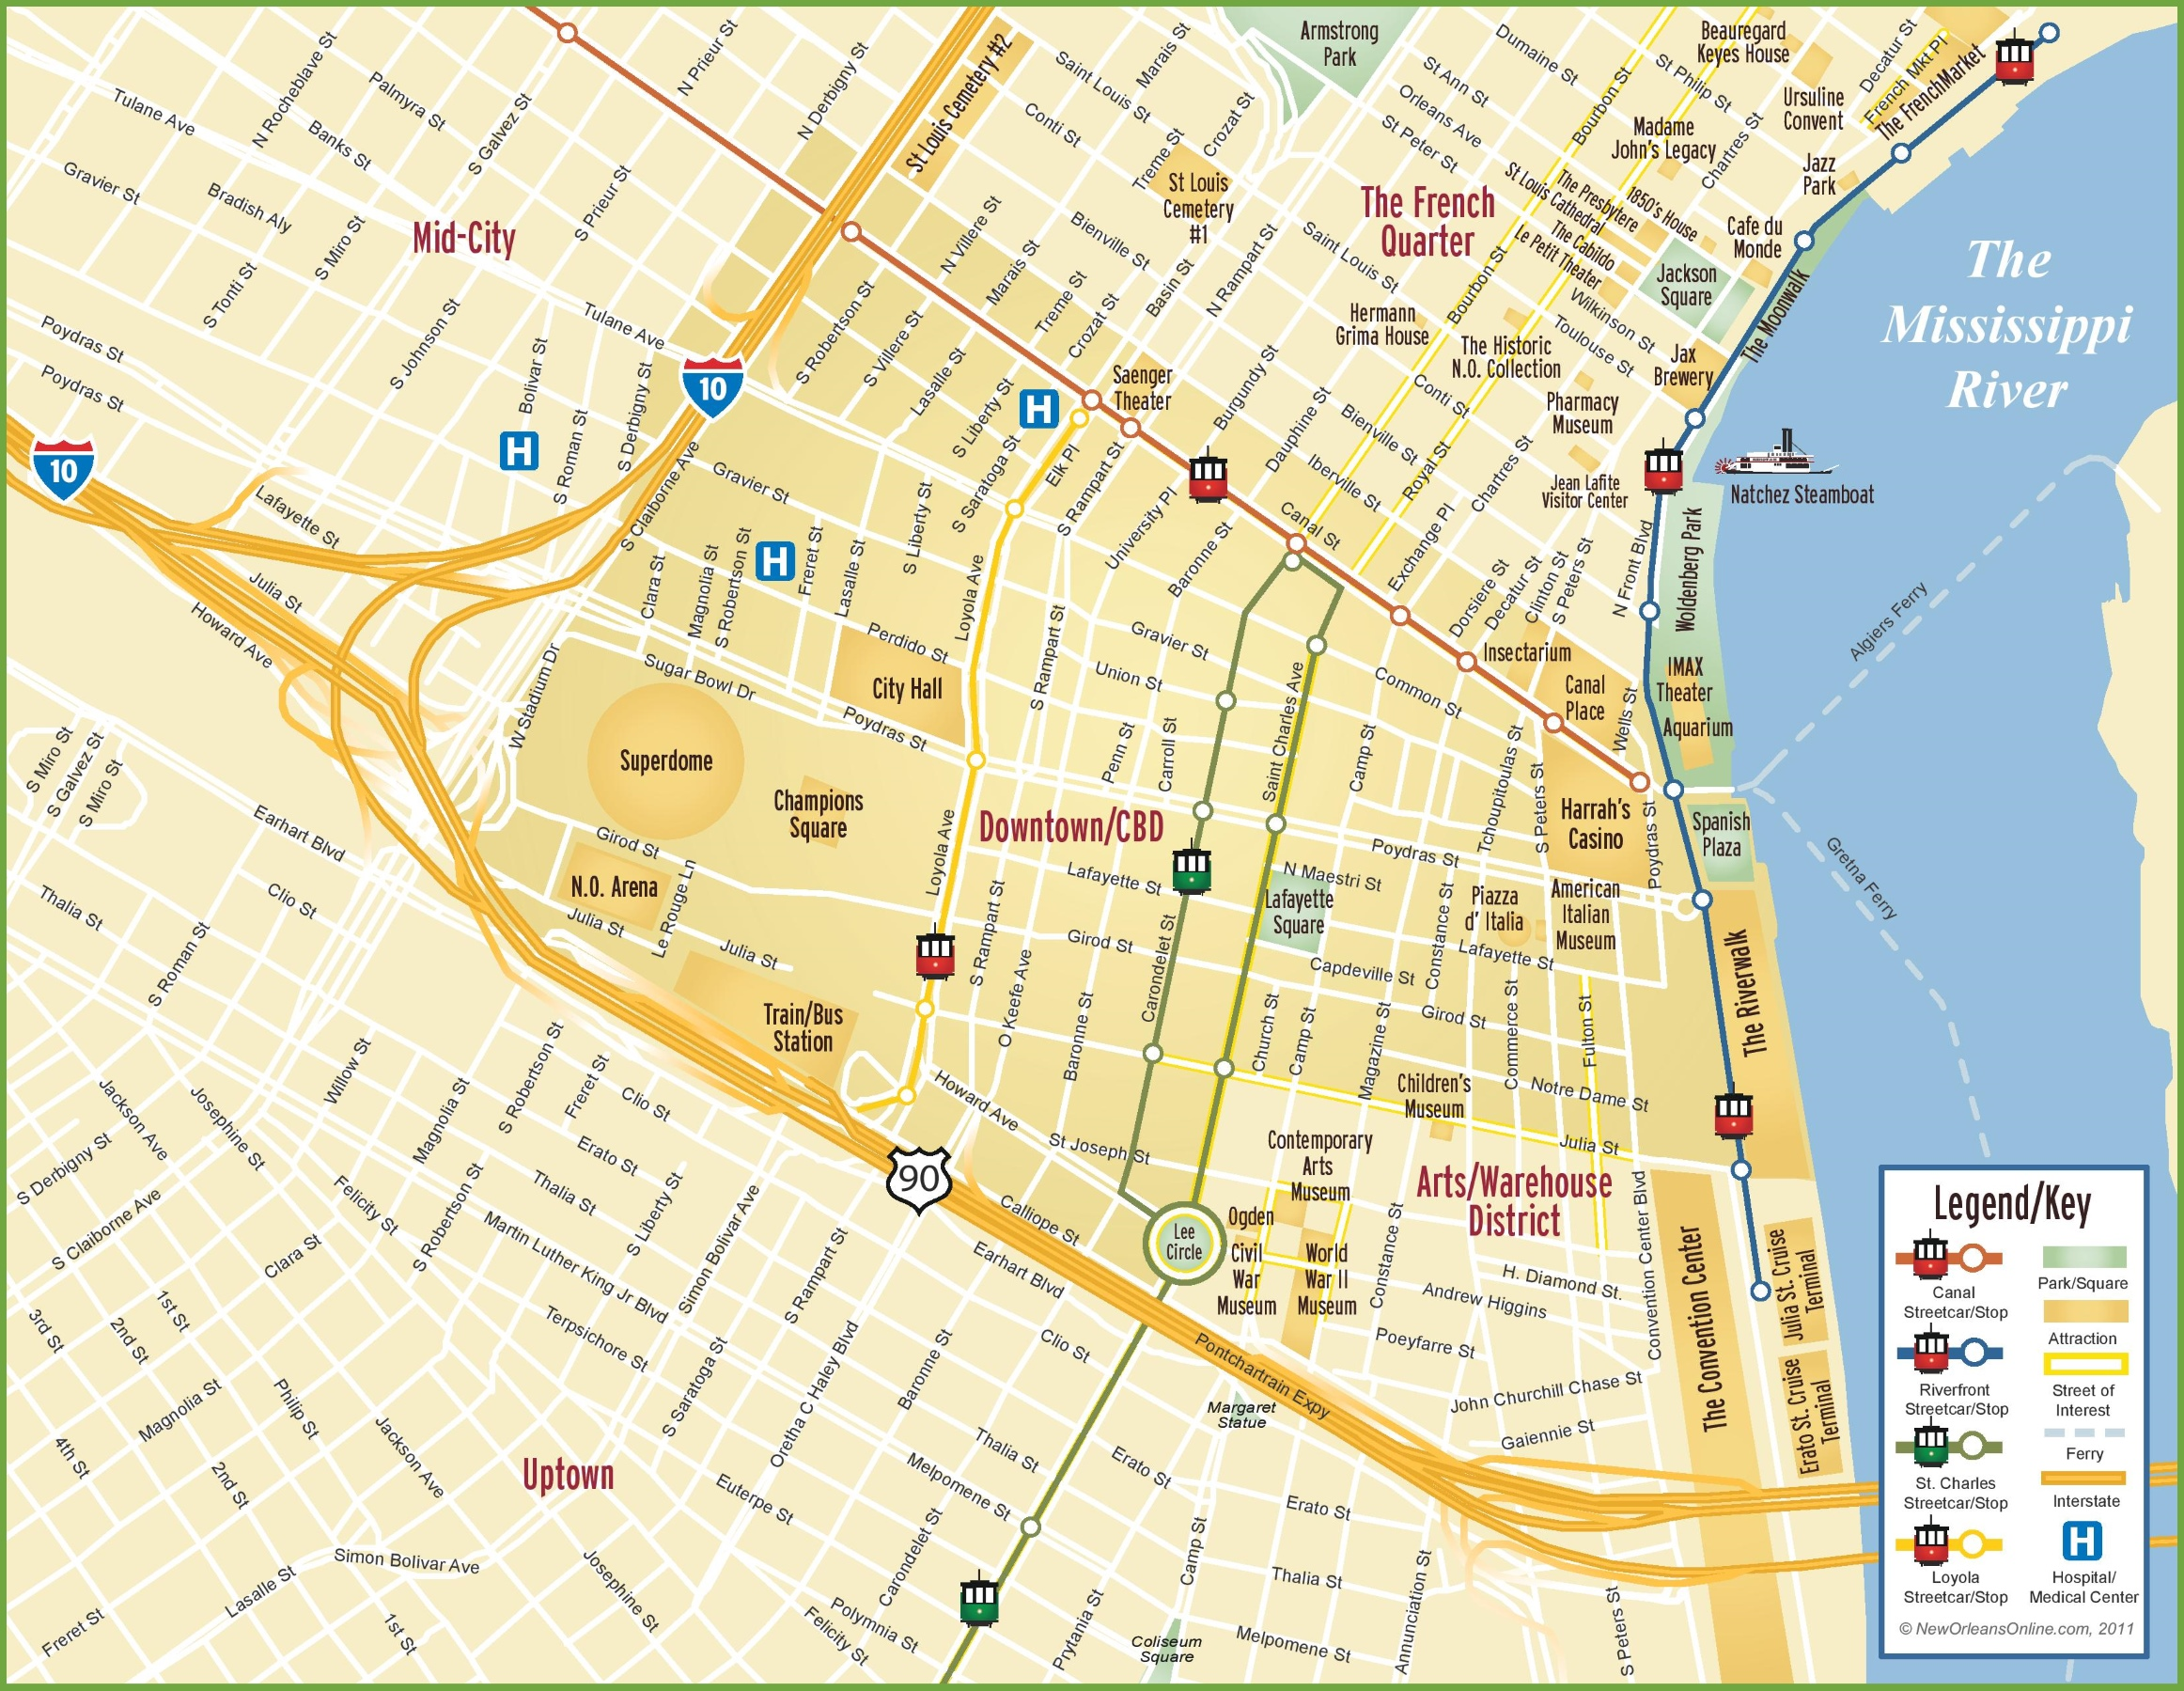 image about Printable Maps of New Orleans named Fresh new Orleans CBD and downtown map